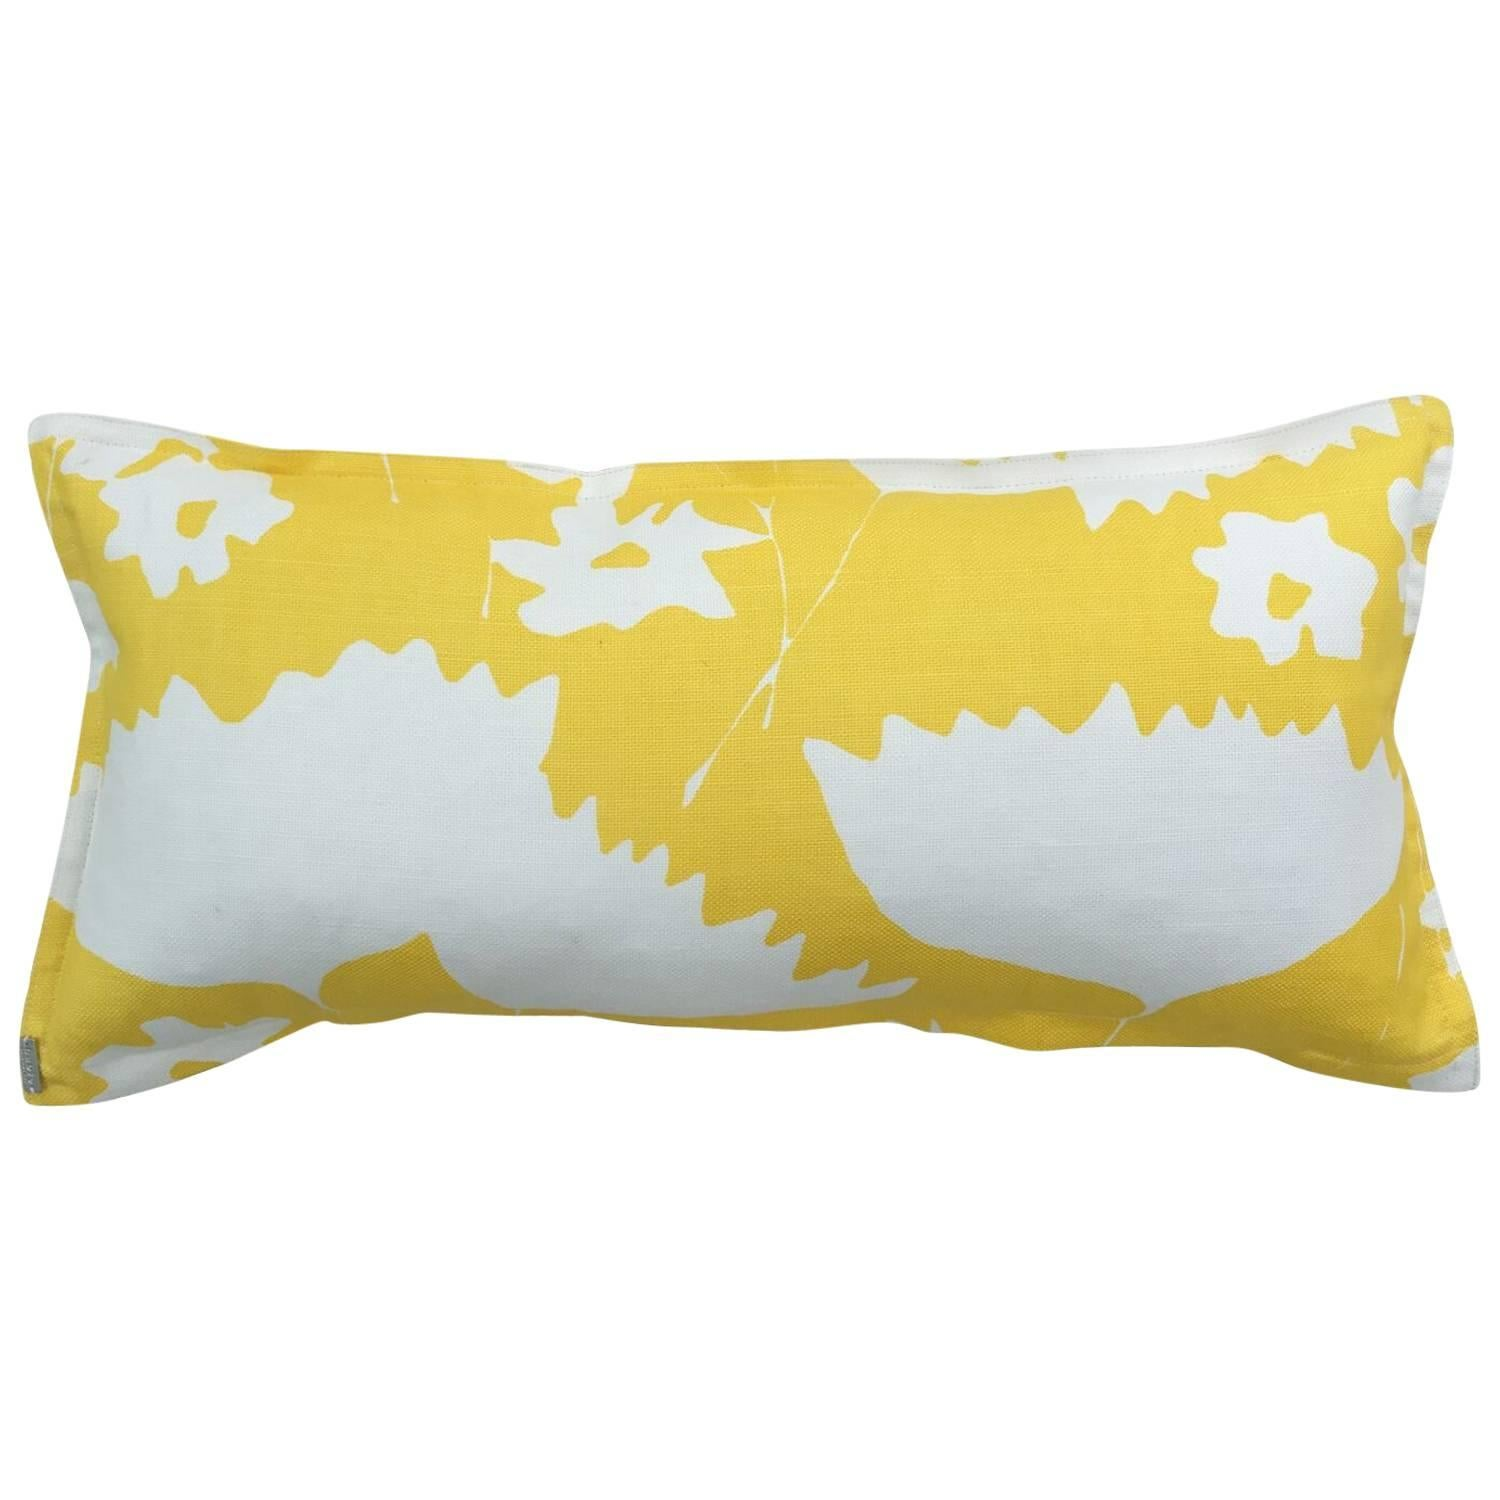 Sunshine Cosmos on Oyster Cotton Linen Pillow